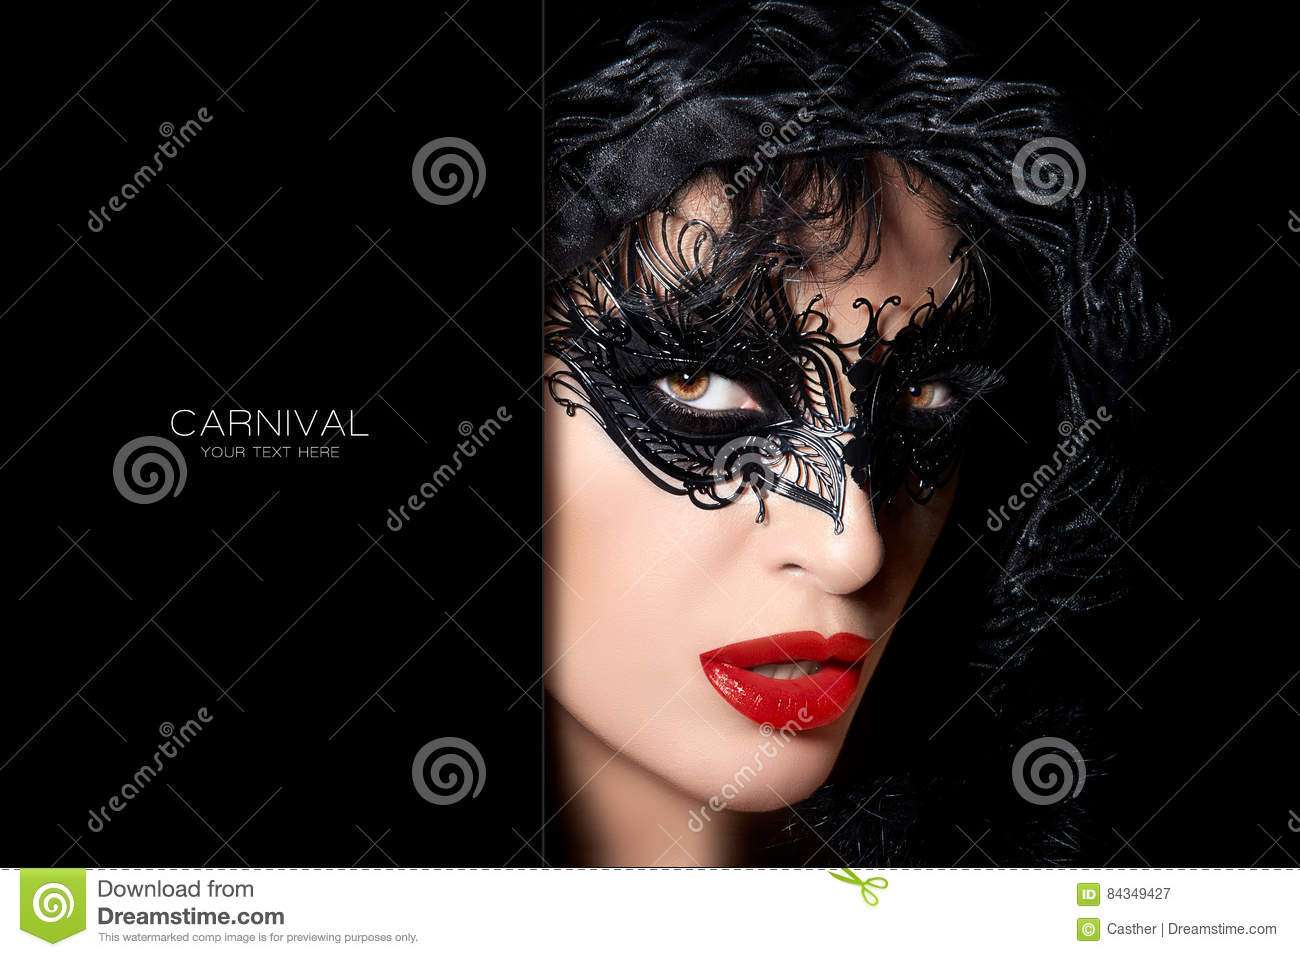 Sultry Mysterious Woman In Carnival Mask Stock Photo - Image: 84349427